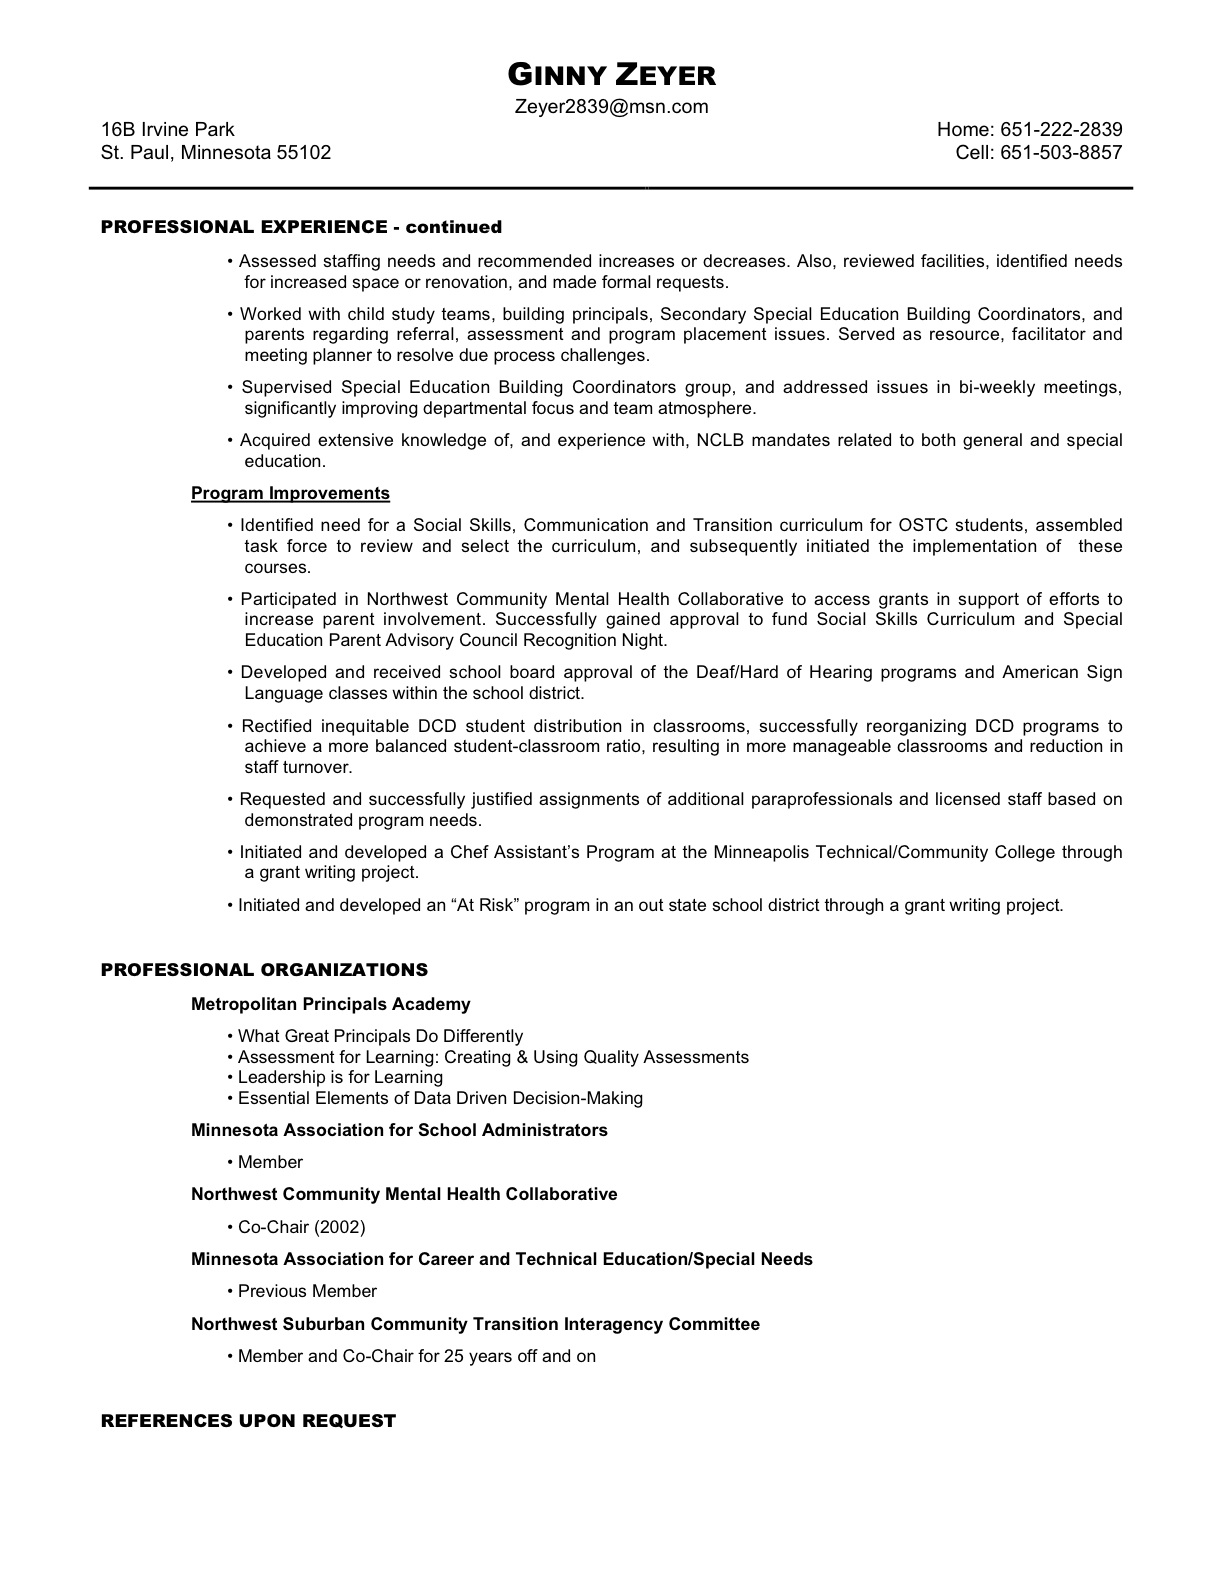 qualification for resume ginnys resume2 qualification for resume 4624